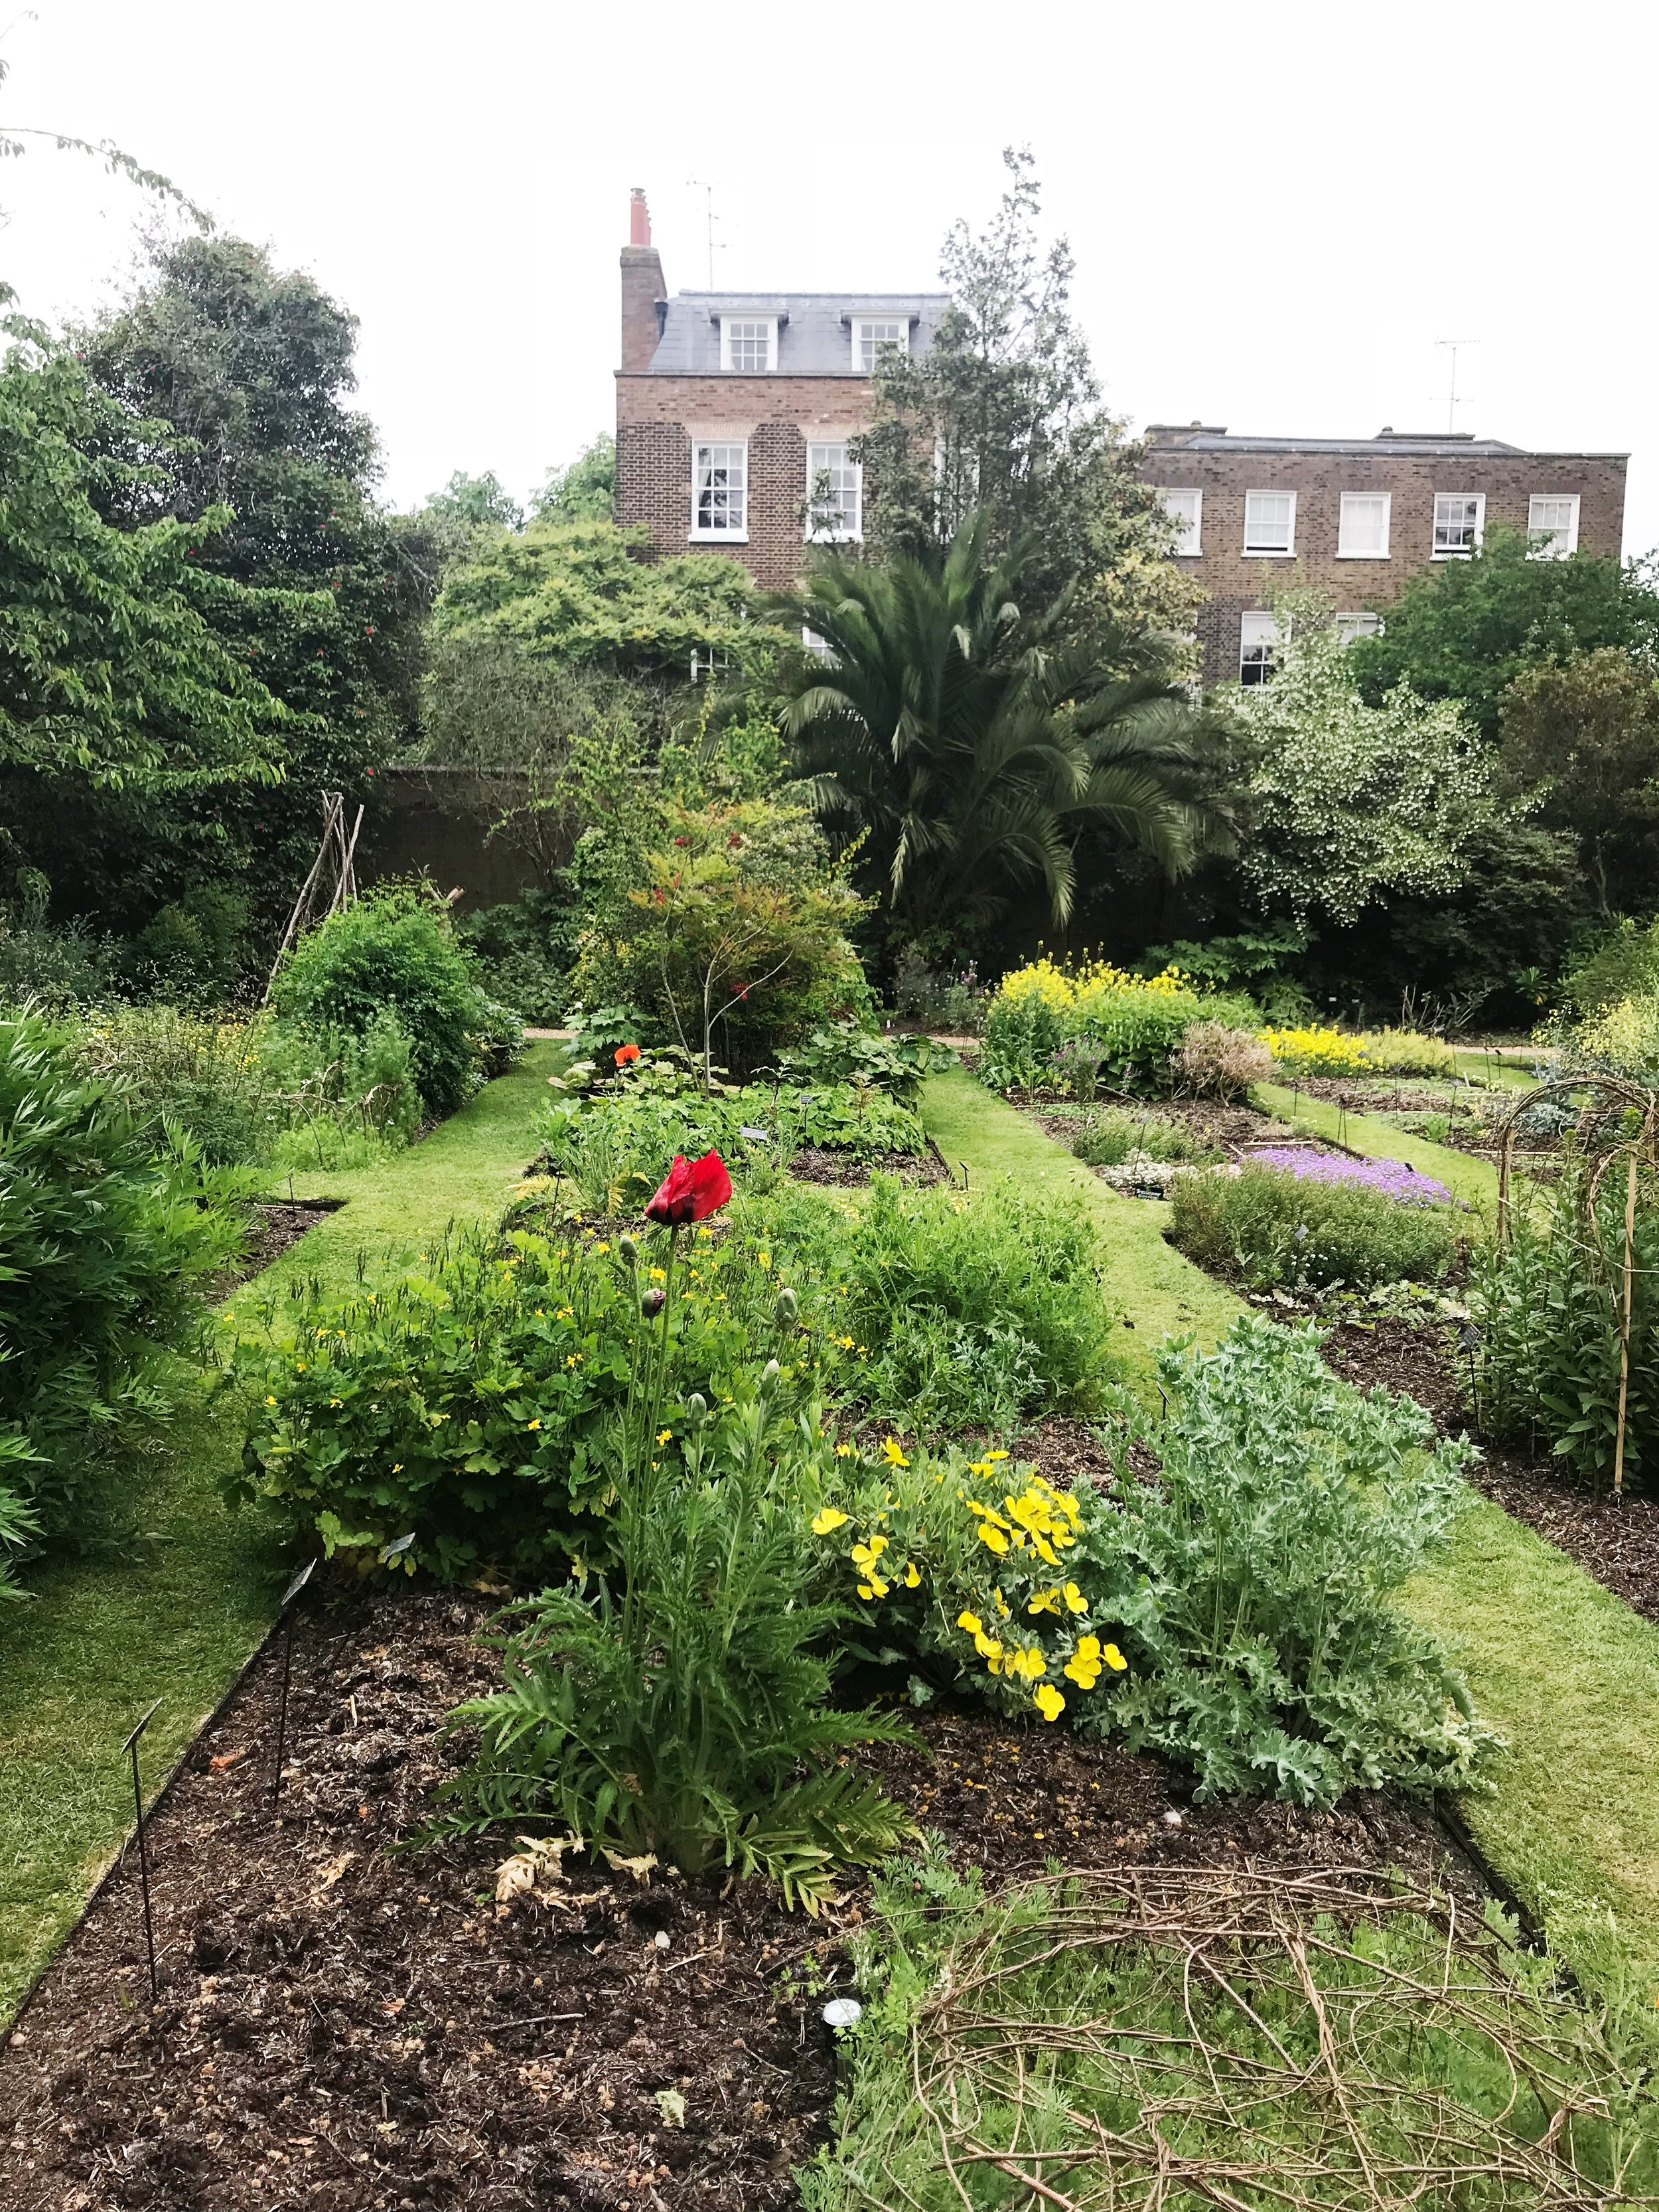 A visit to the Chelsea Physic Gardens